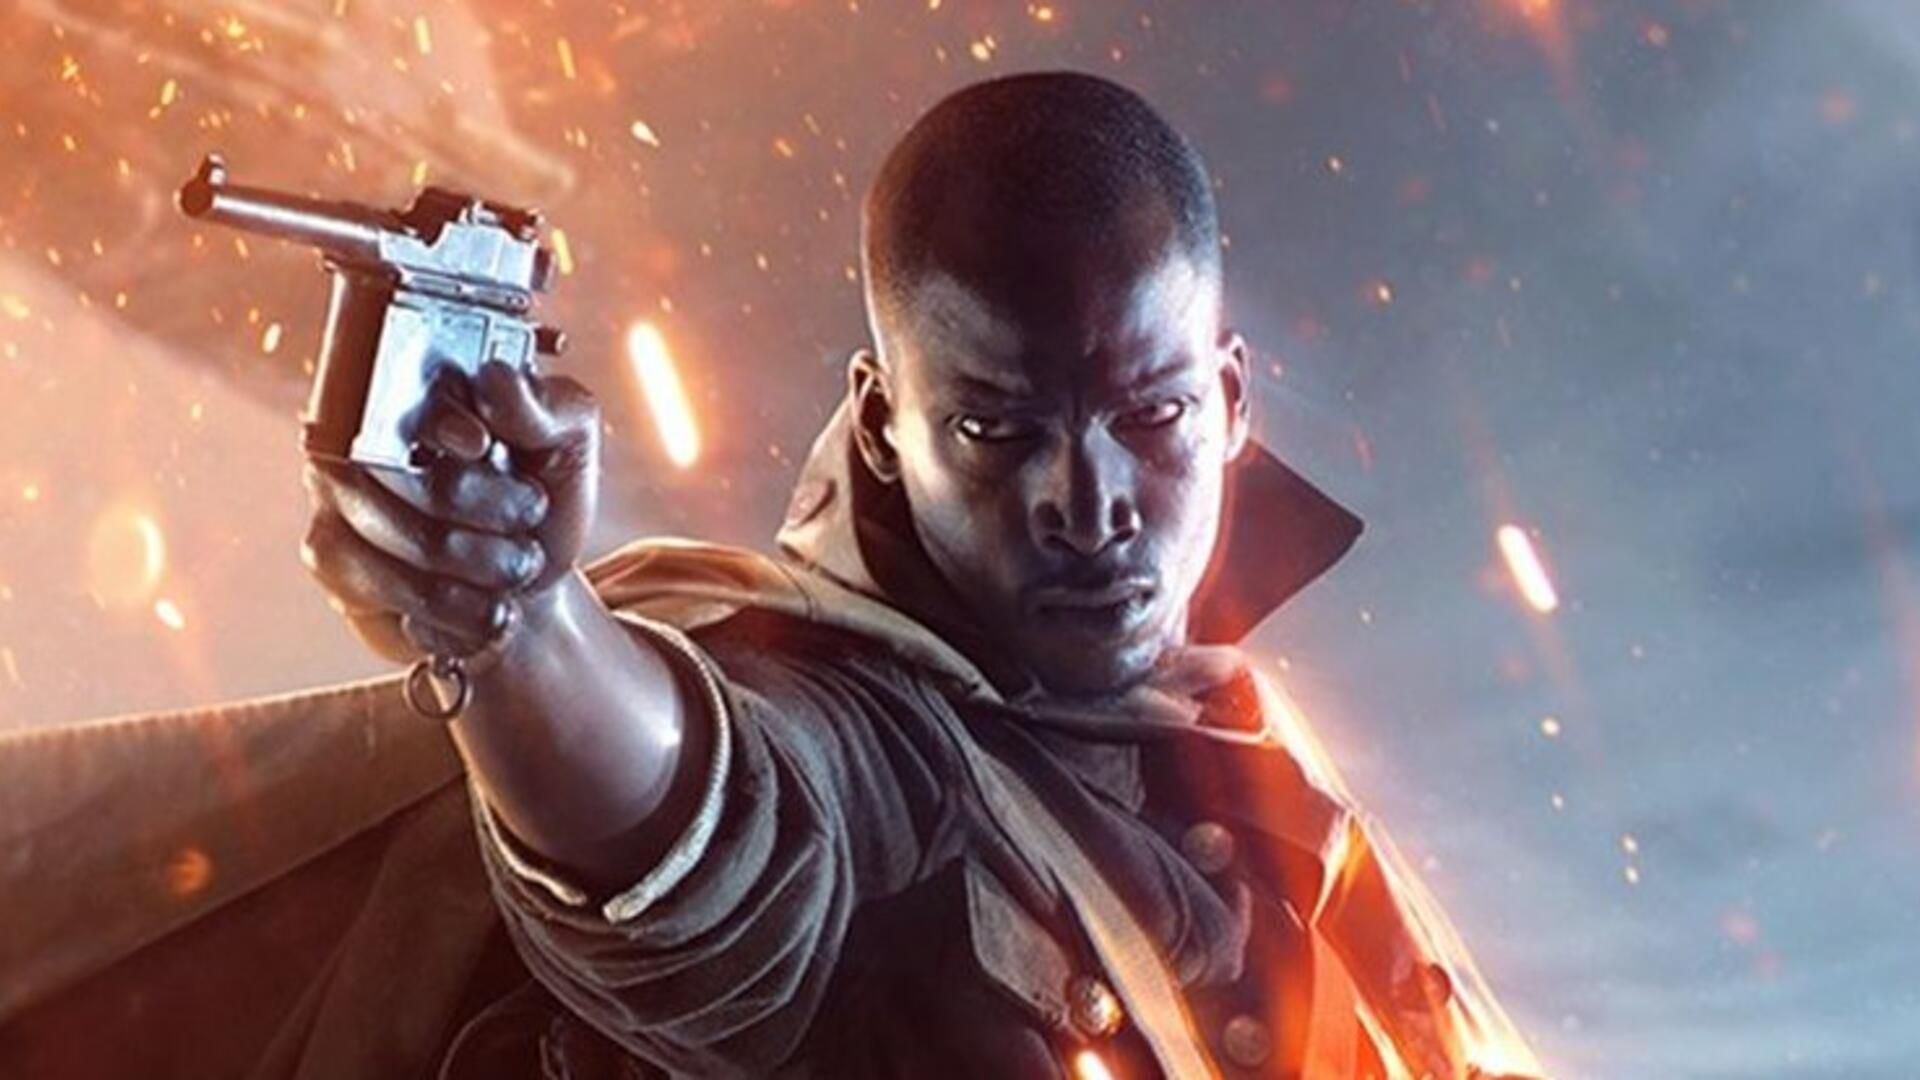 Battlefield 1 to Get 4K Support on Xbox One X Soon